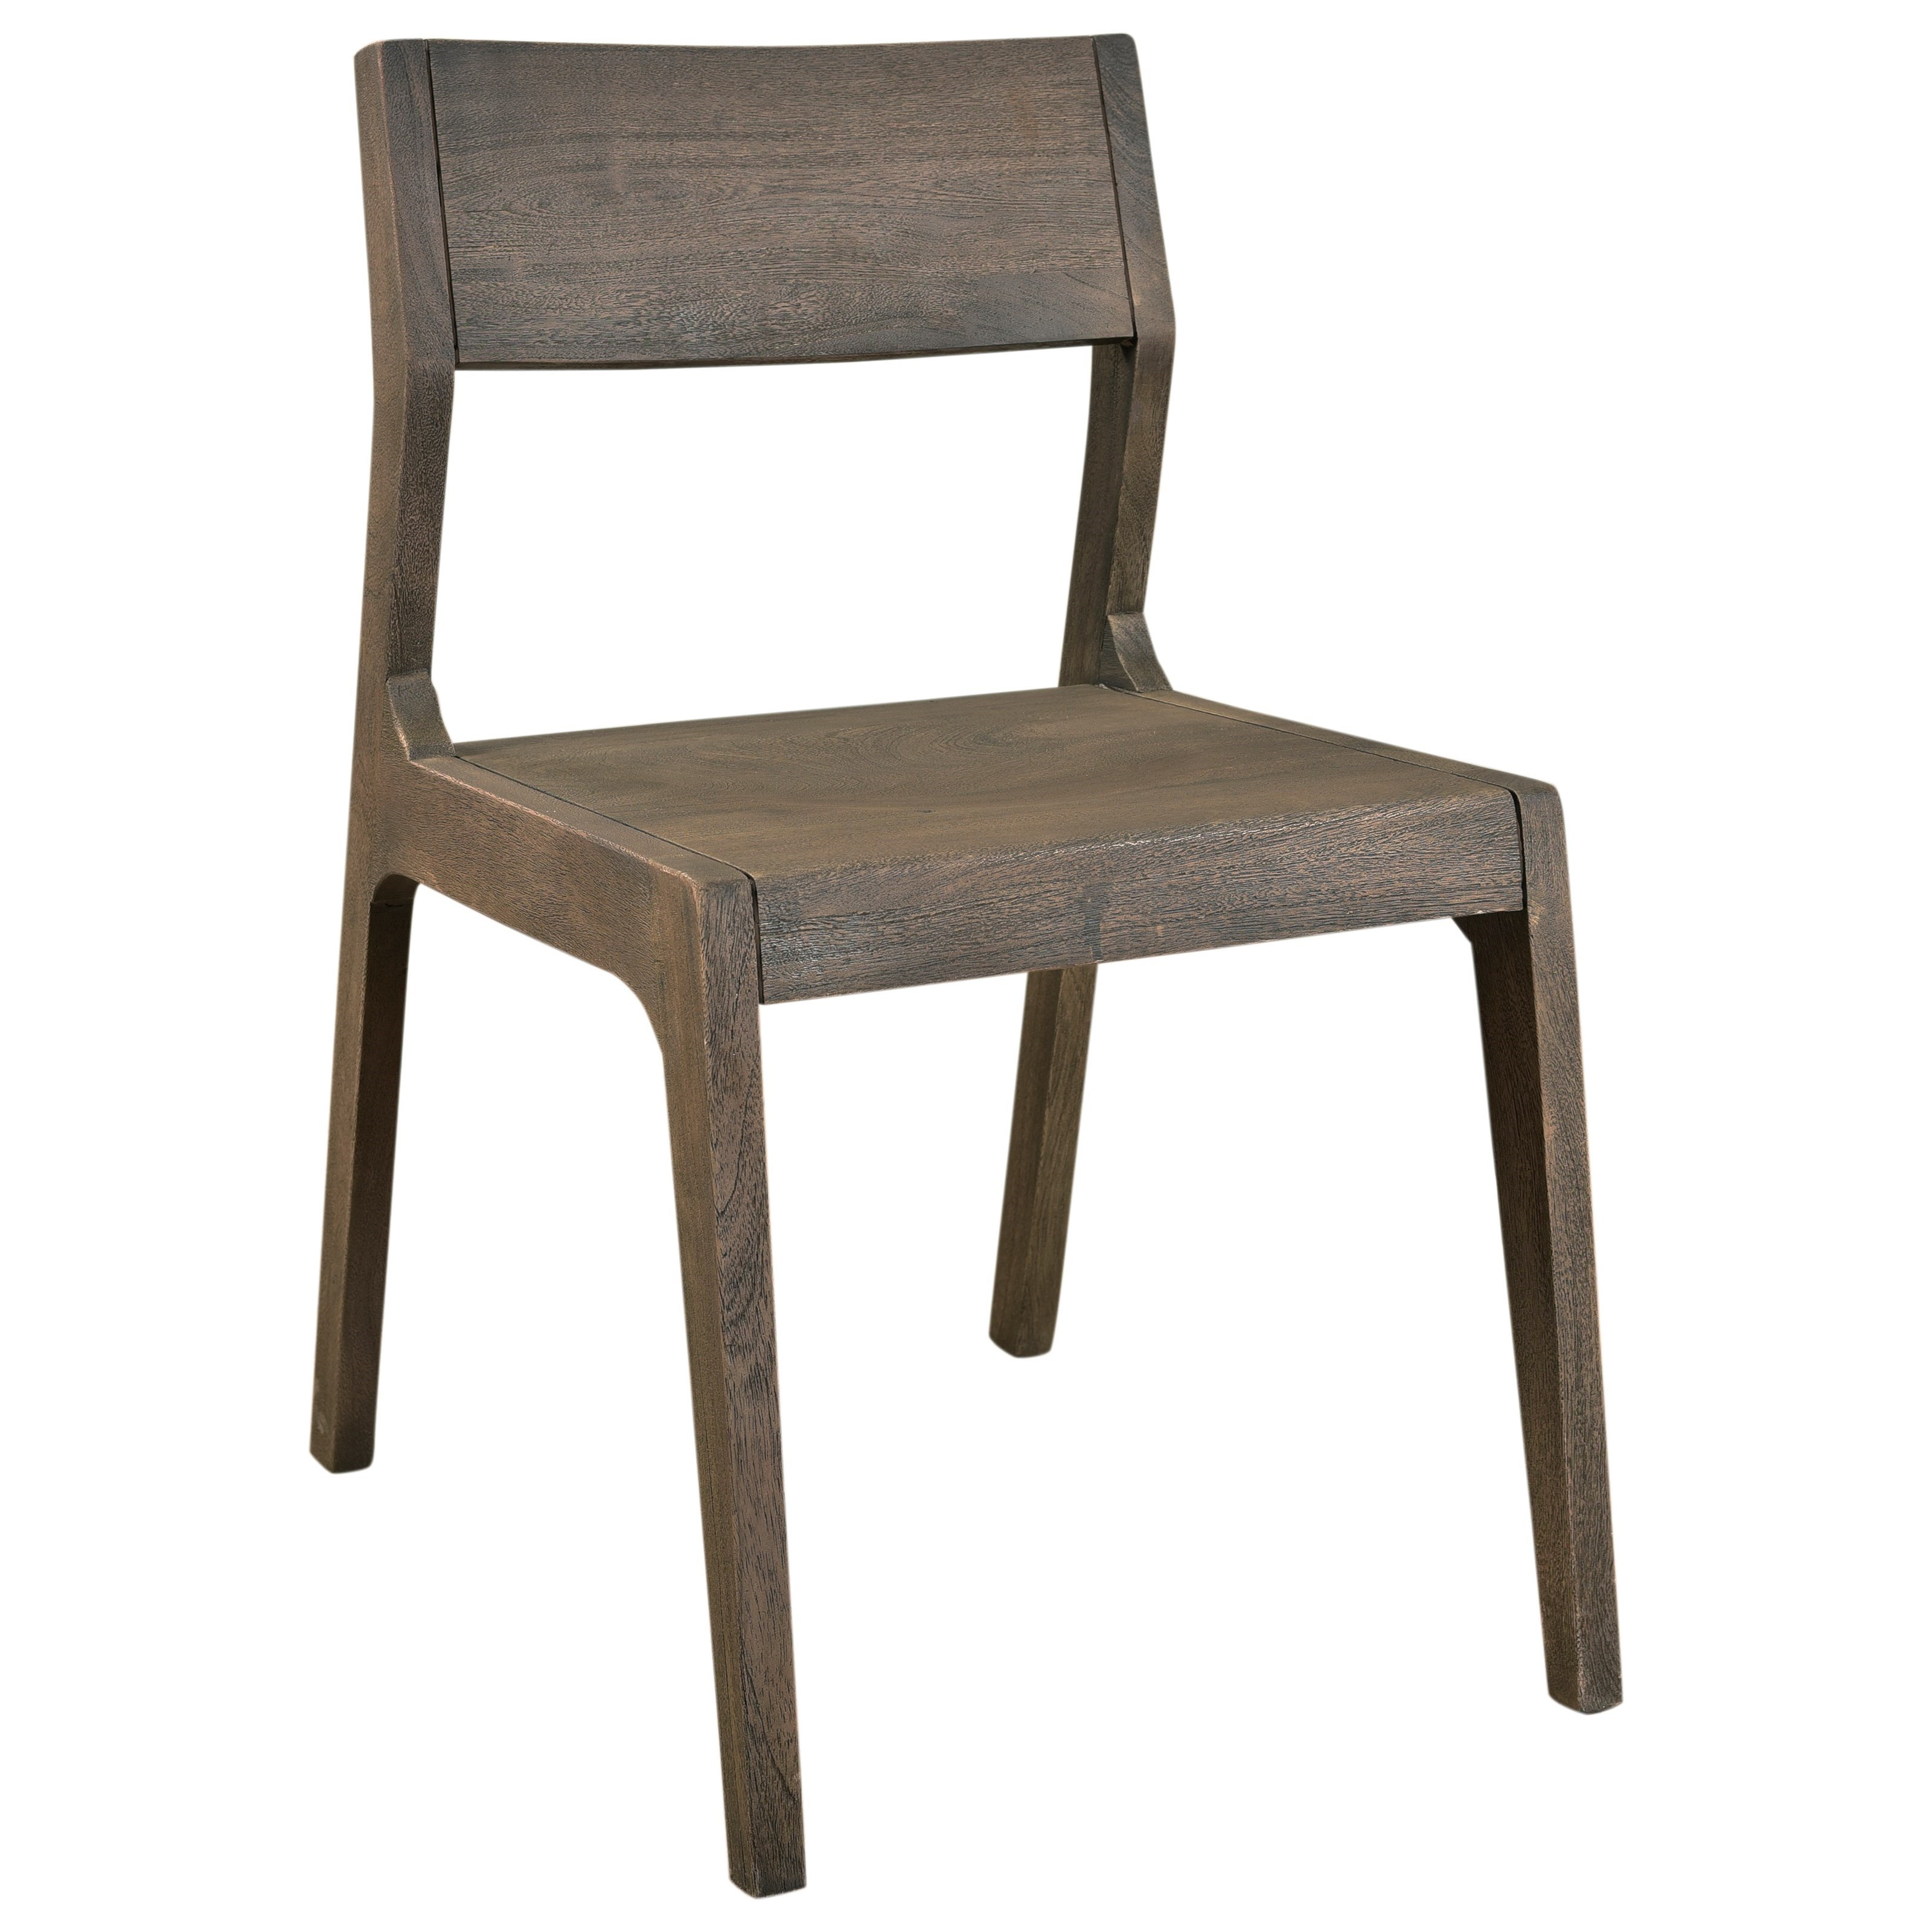 Tundra Wood Dining Chair  by Coast to Coast Imports at Baer's Furniture